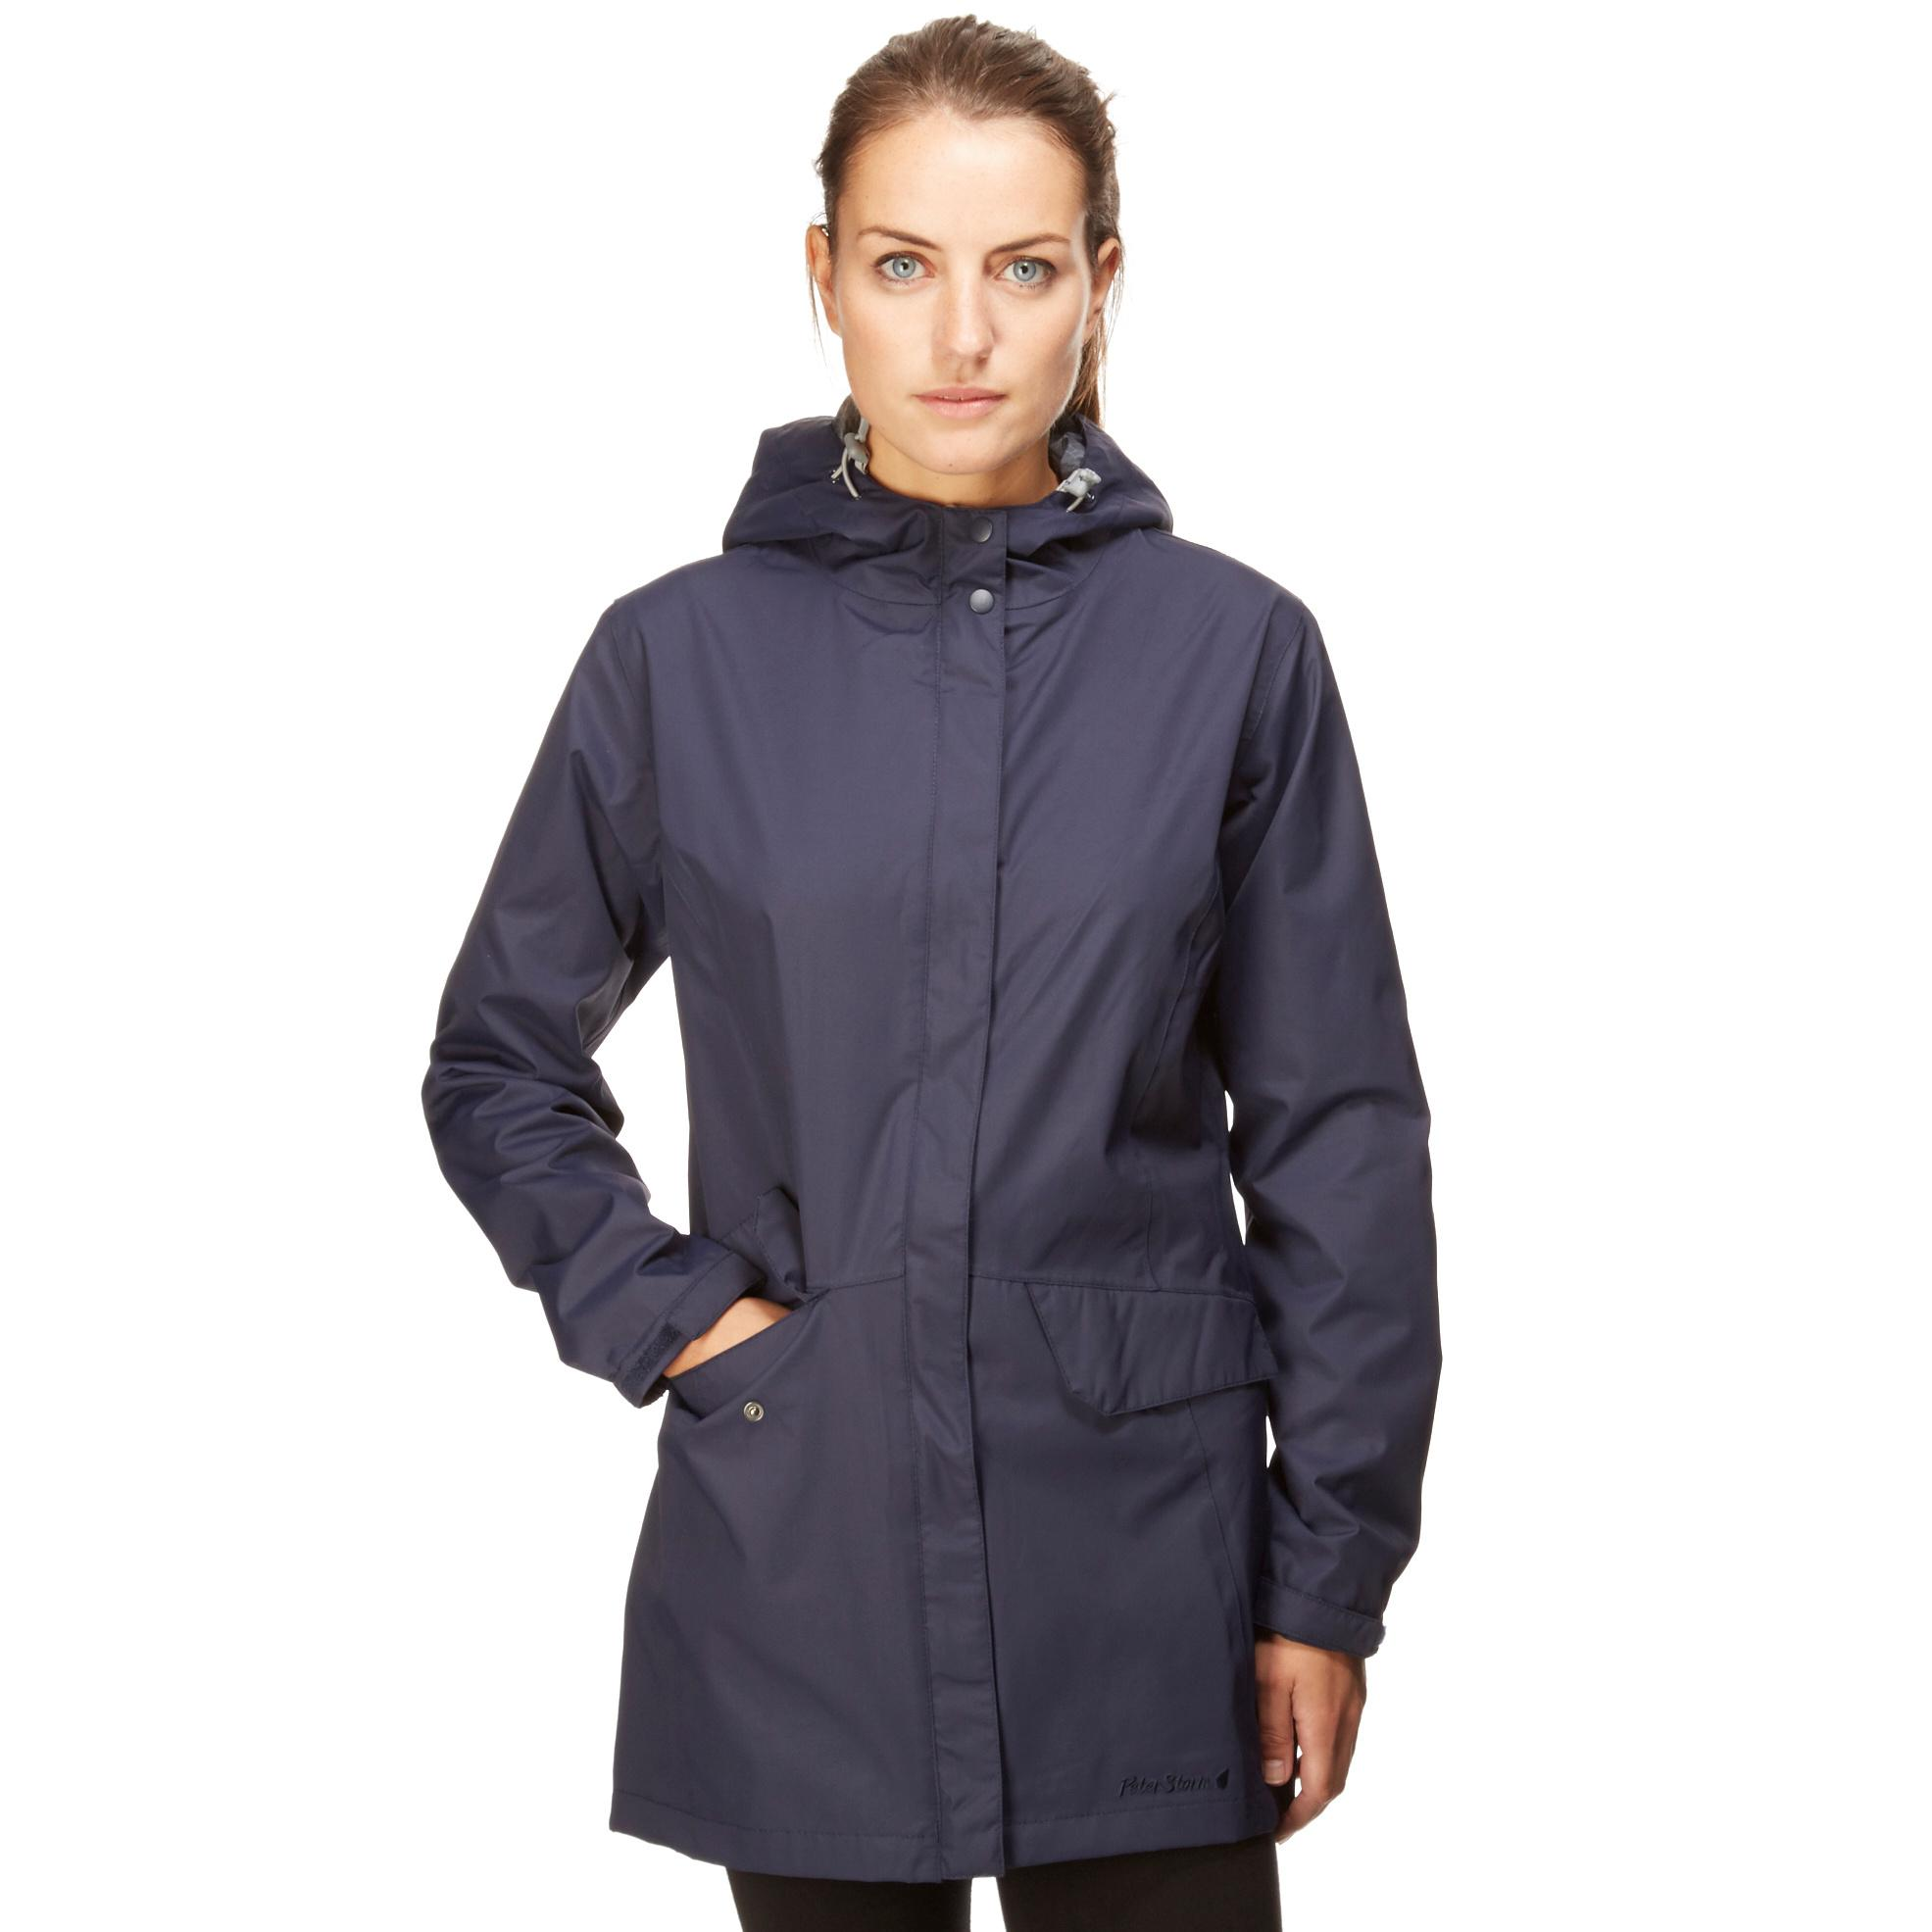 Waterproof Womens Jacket | Jackets Review